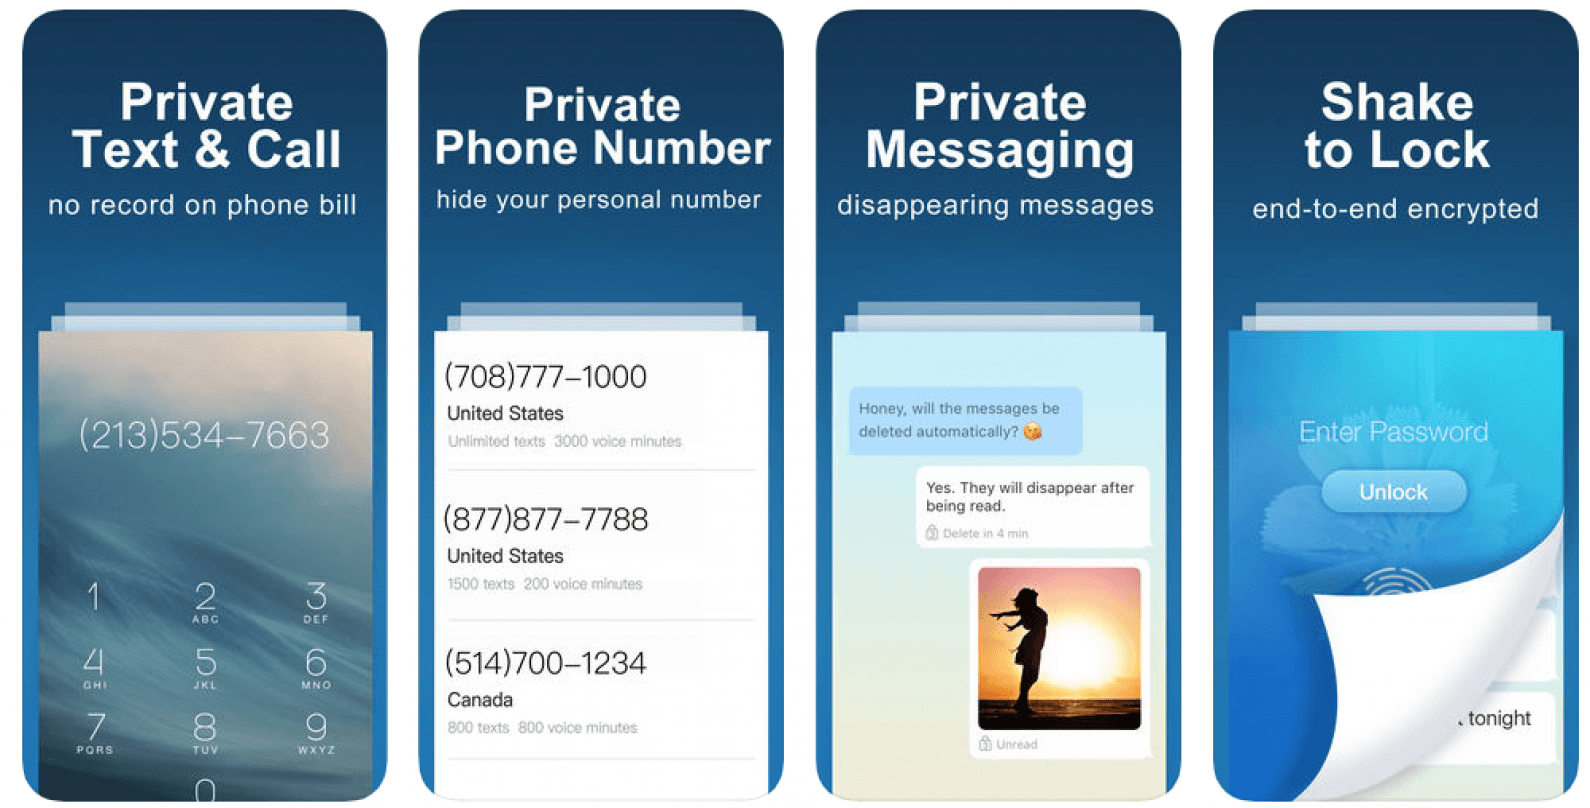 Free to send and receive messages discrete